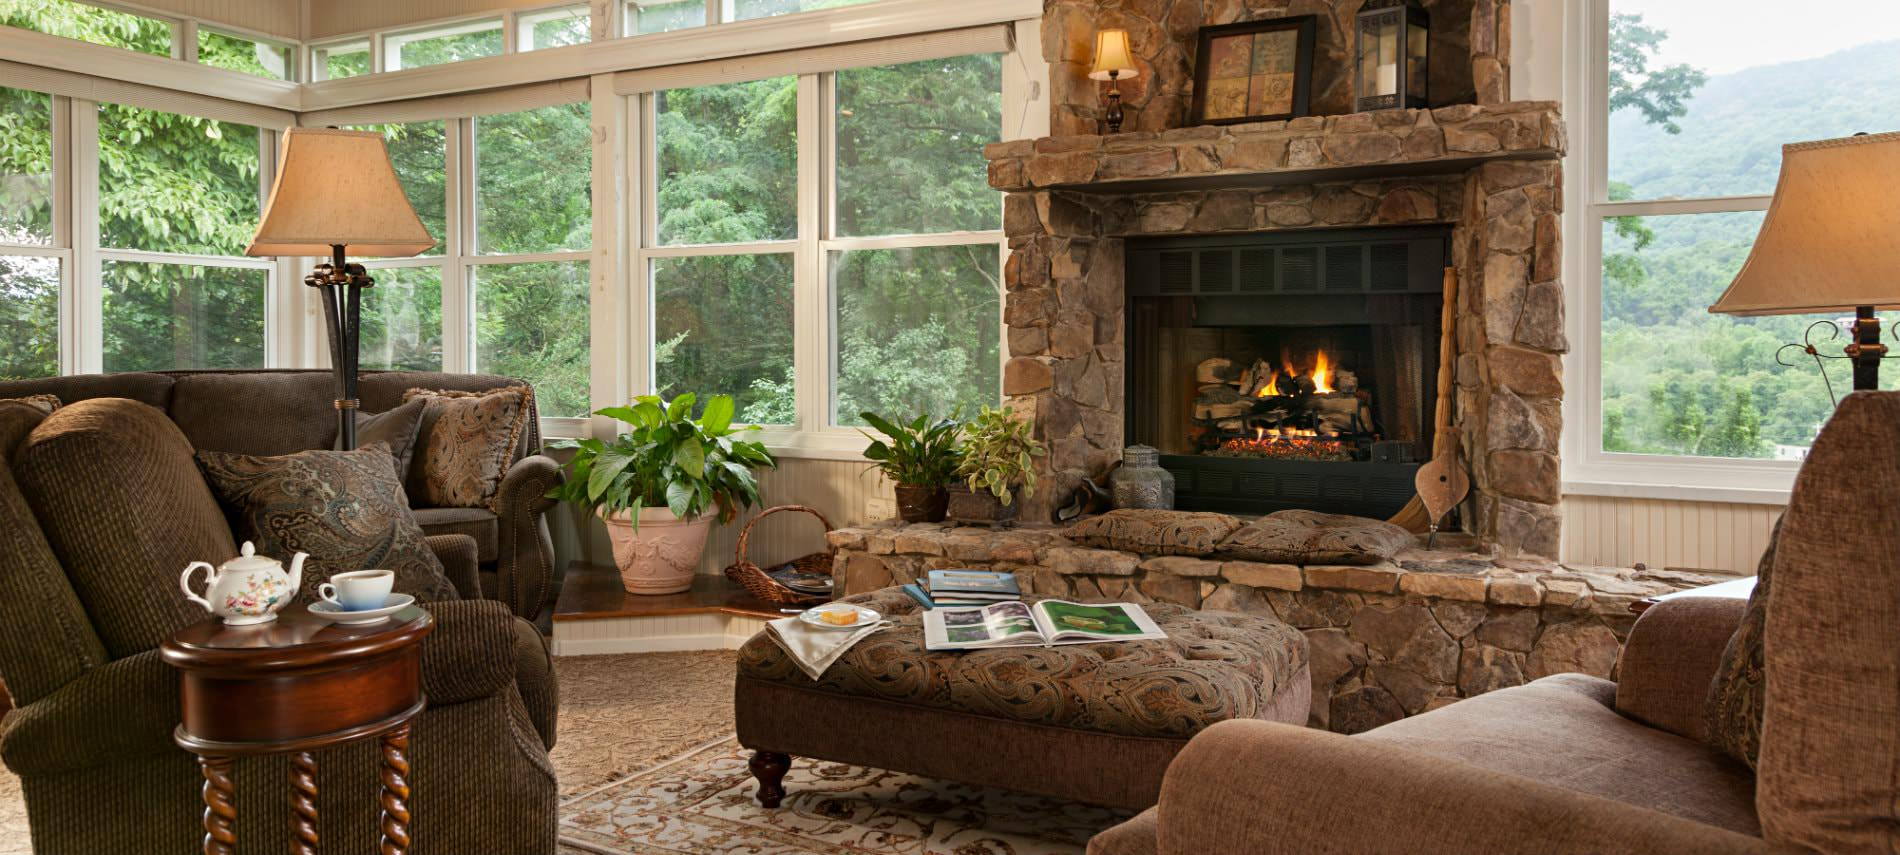 Beautiful and cozy sunroom with tall windows, stone fireplace, upholstered furniture